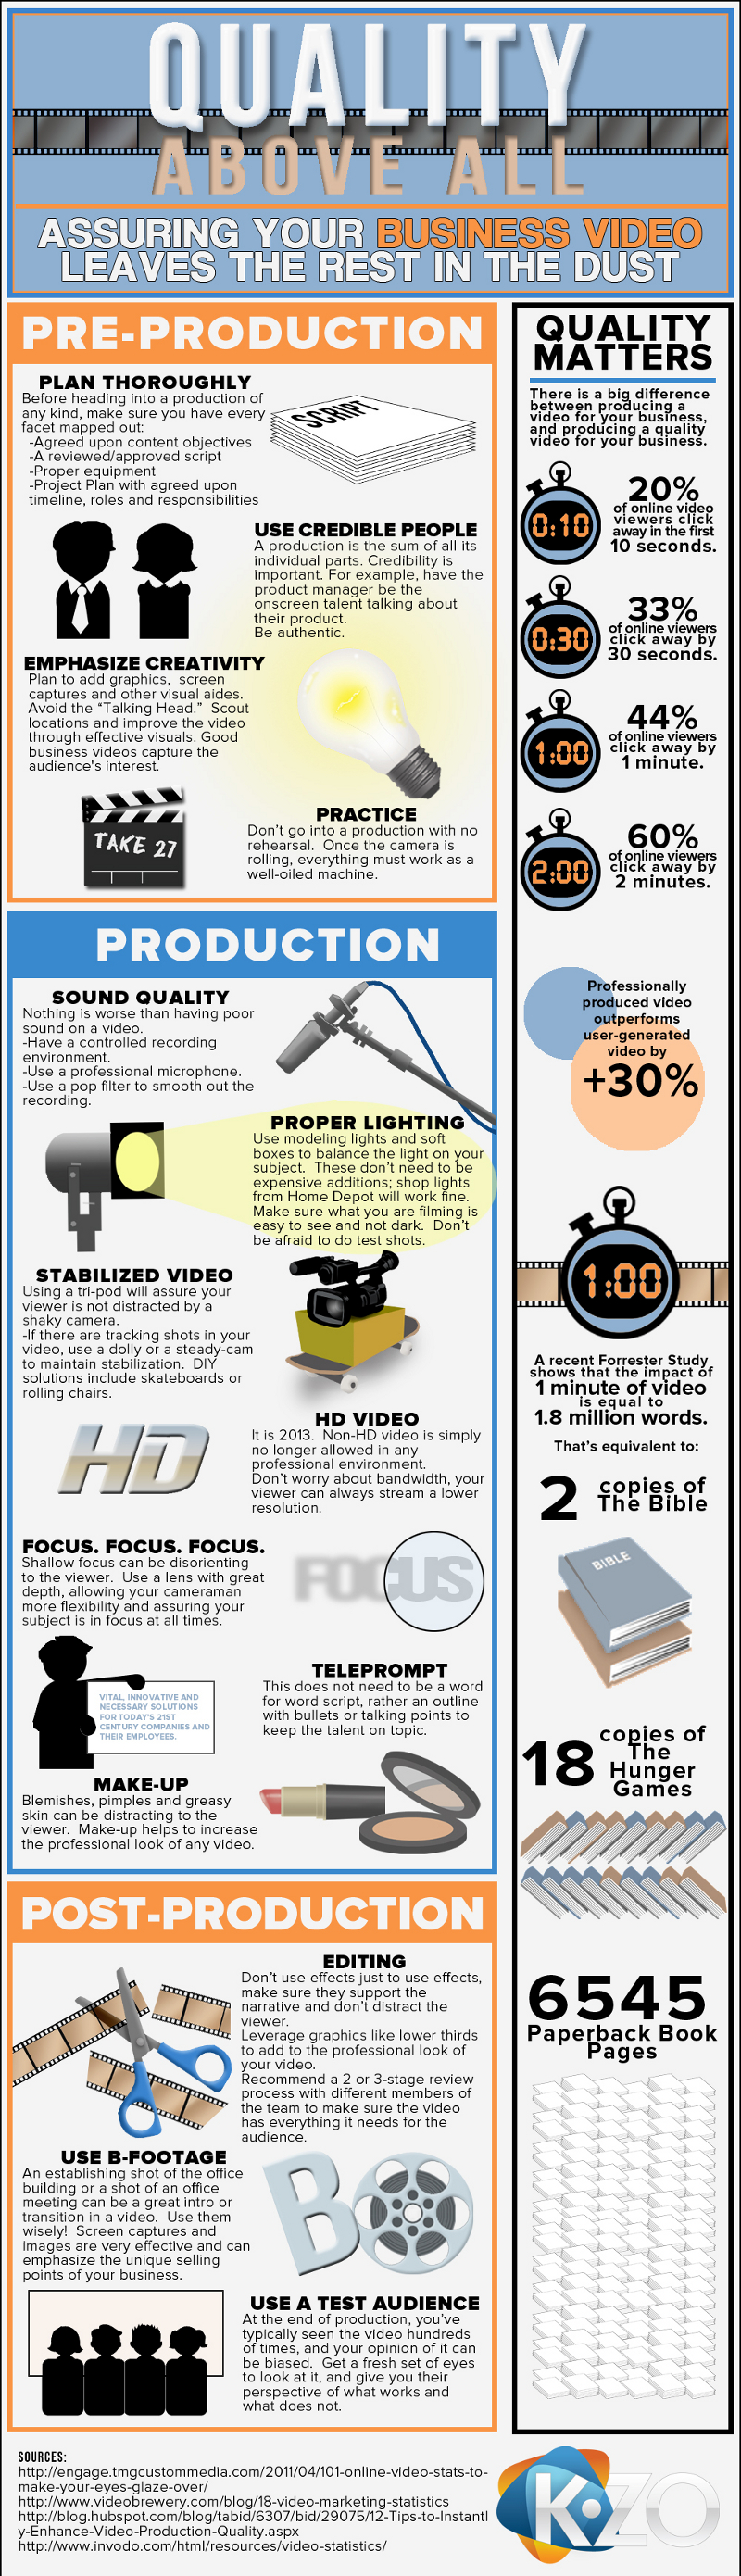 Business Video Production Guide and Tips